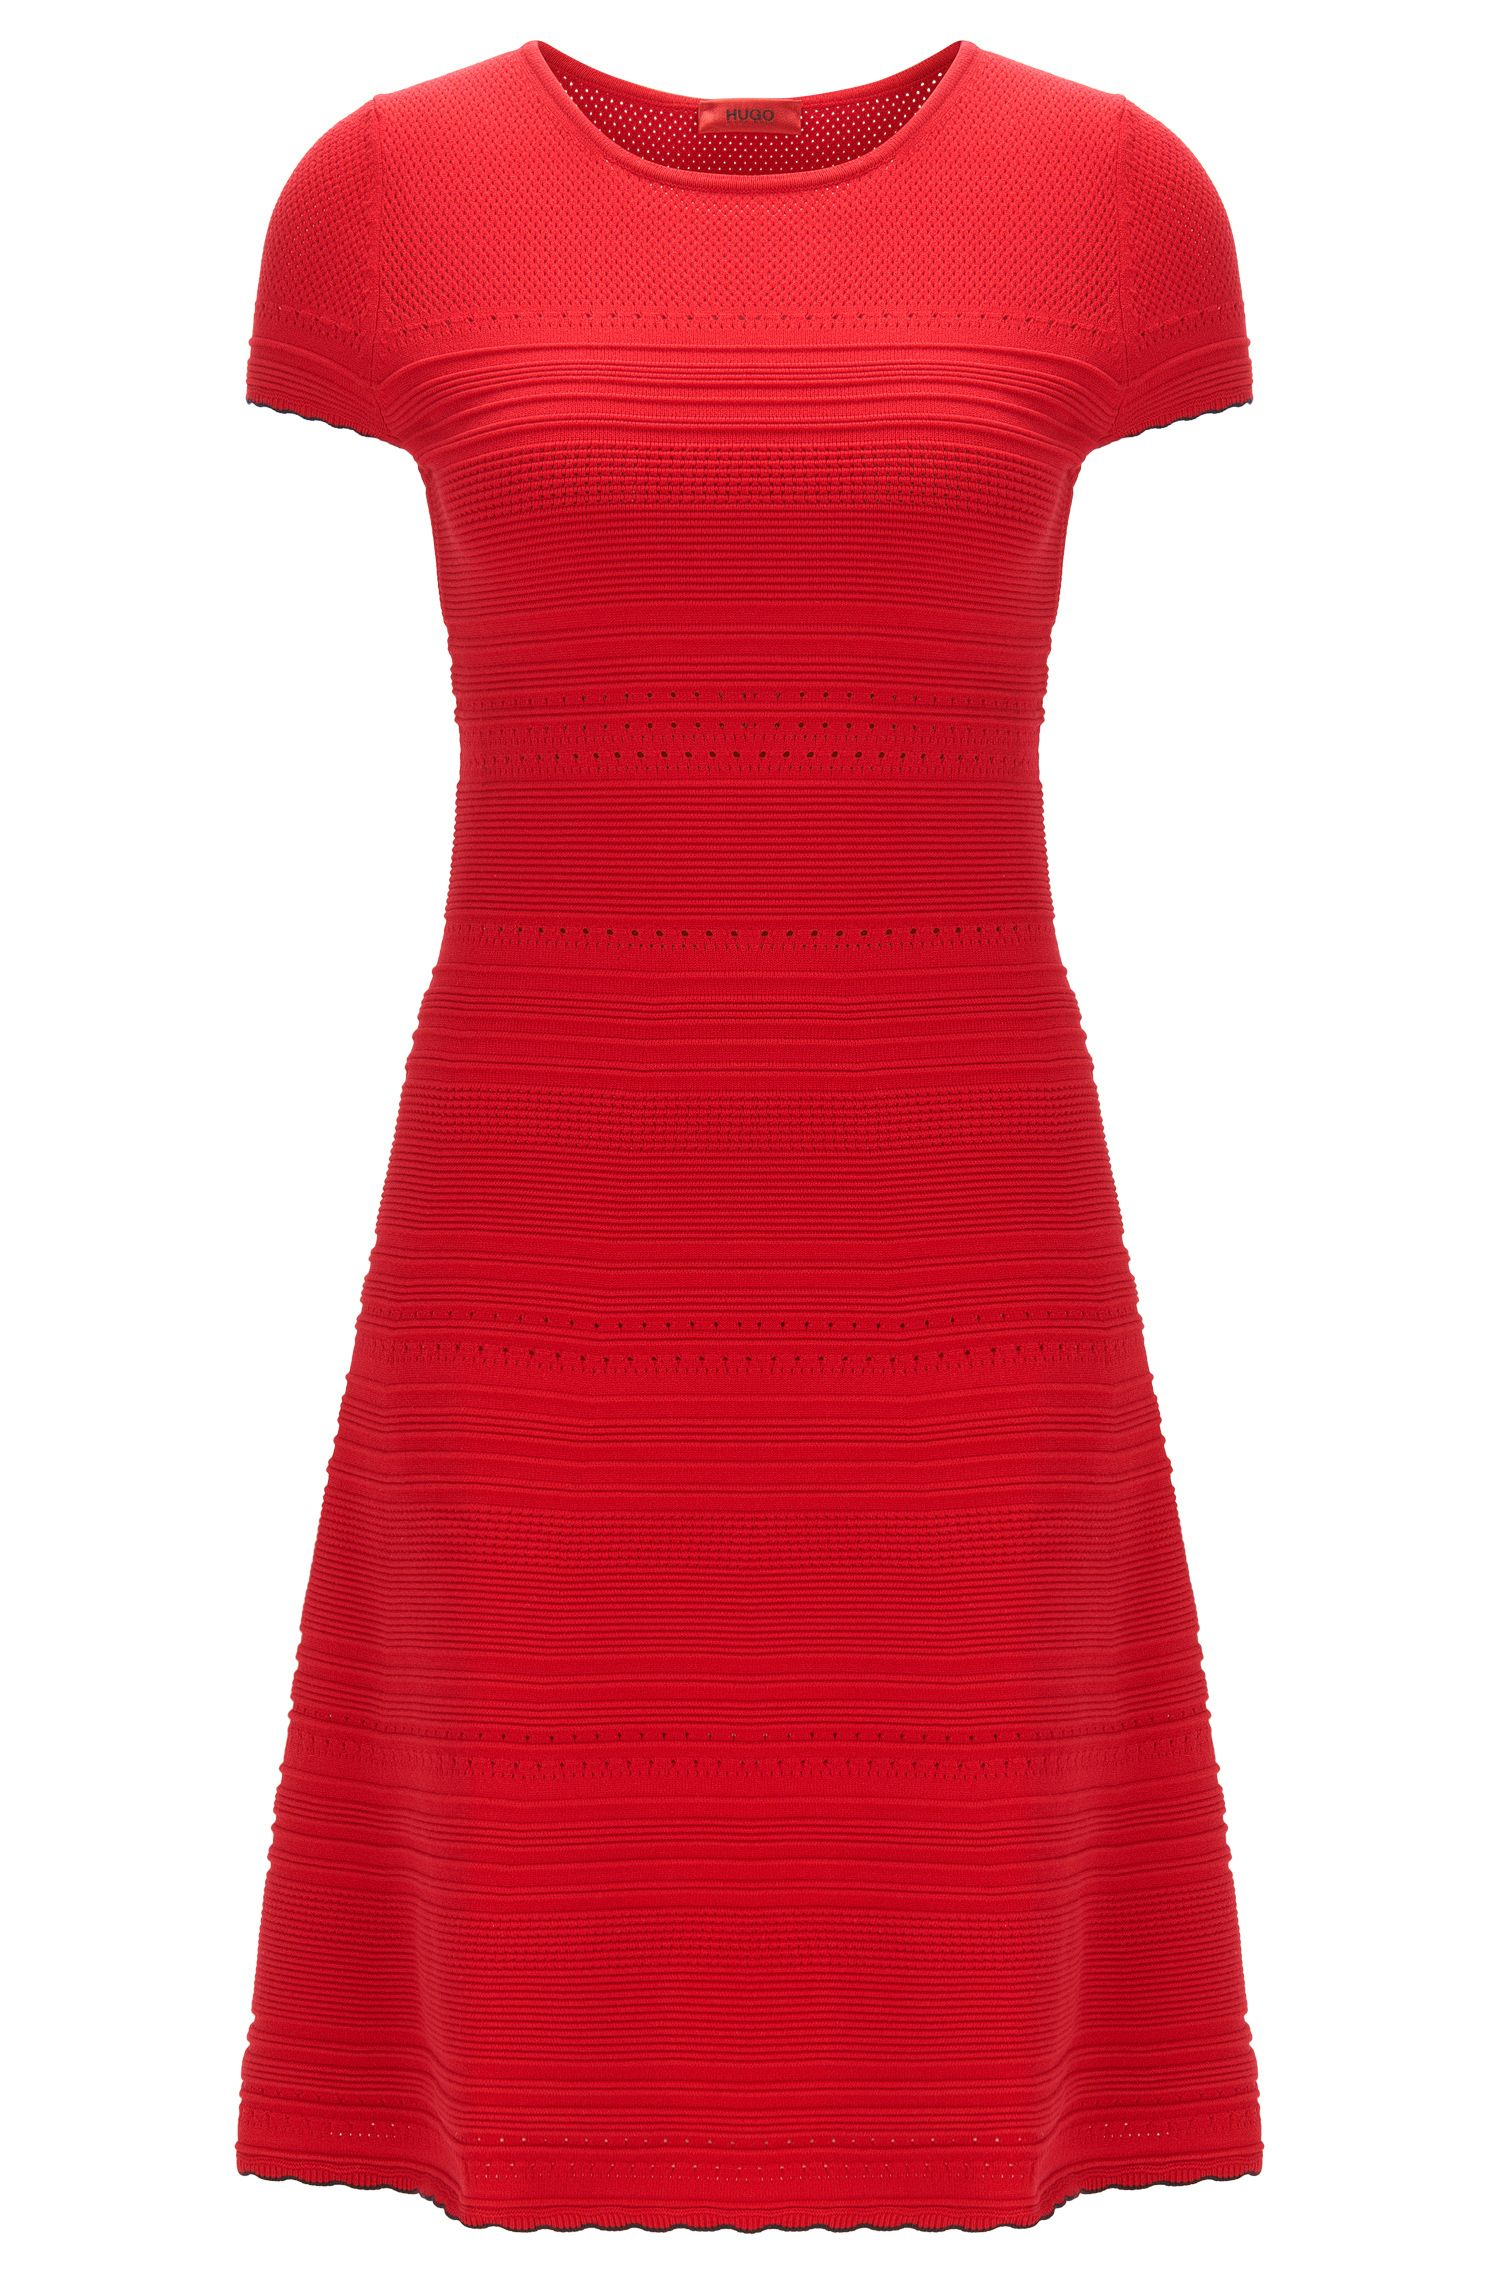 Slim-fit knit dress with scalloped hem